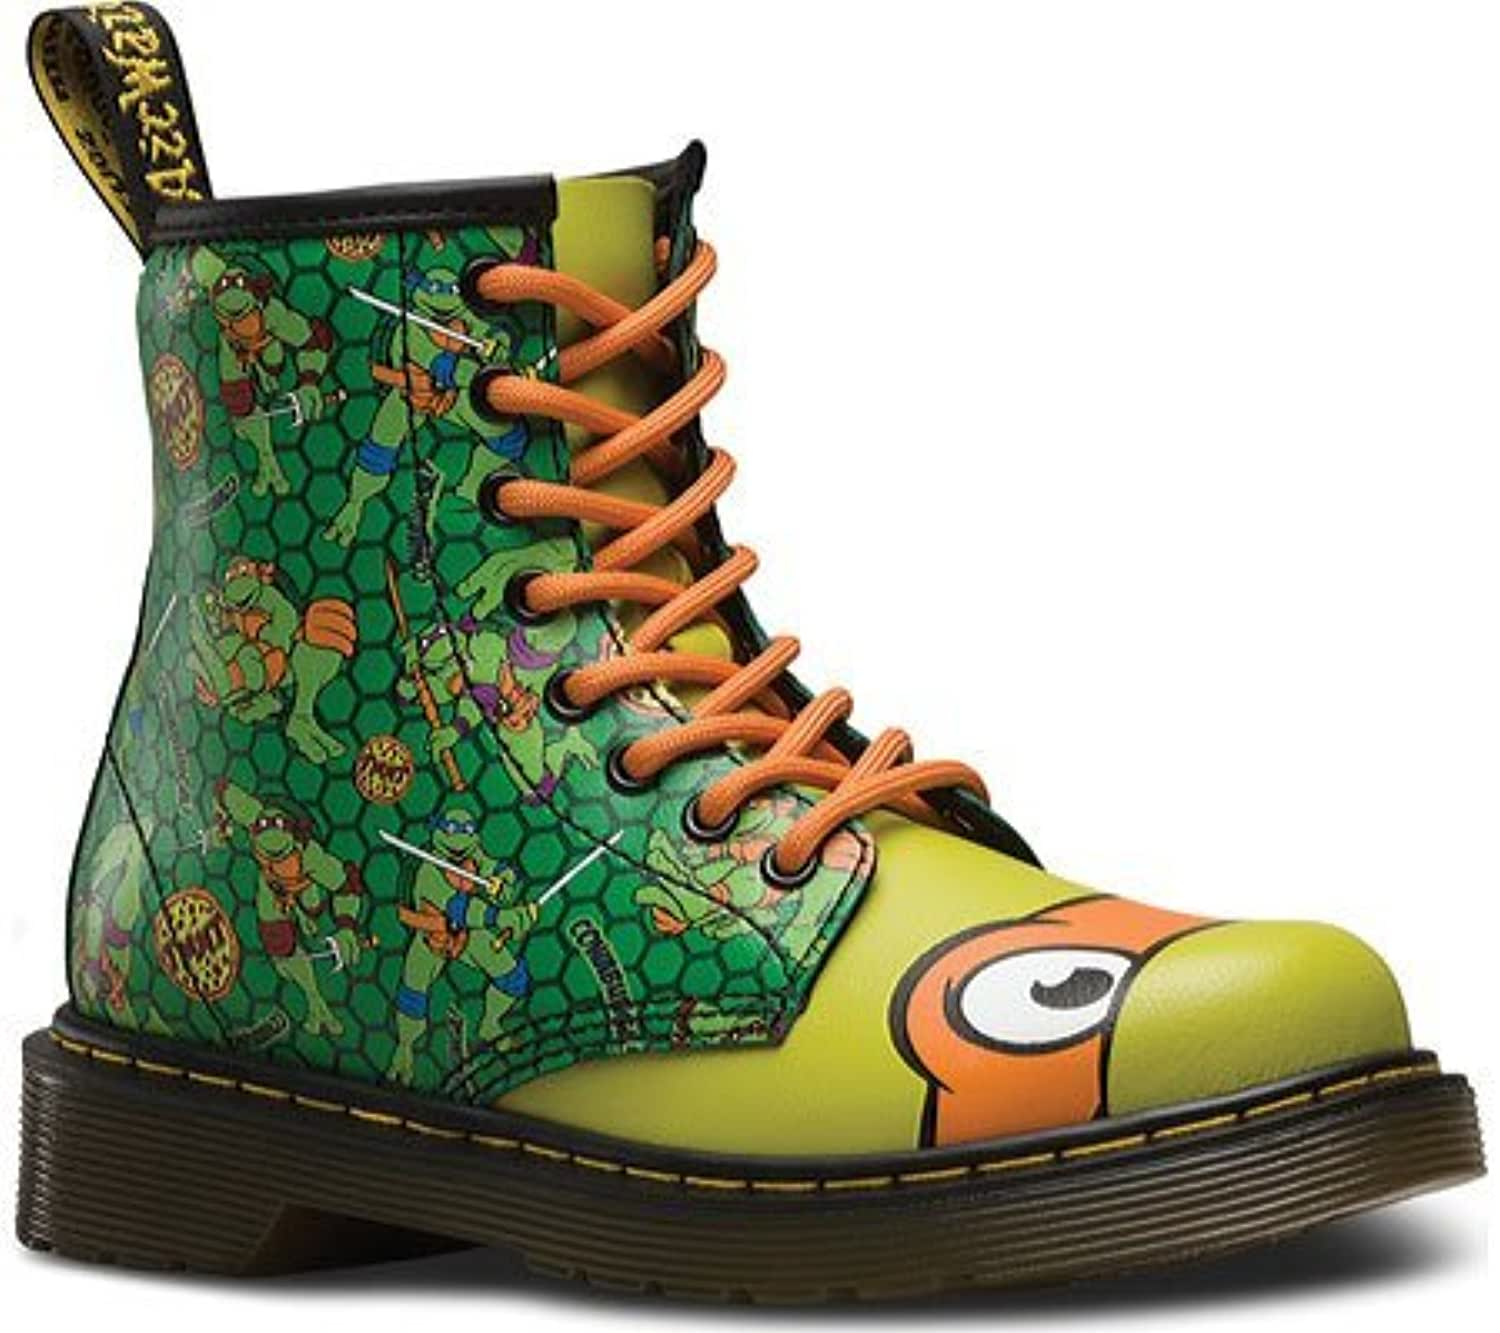 Dr Martens Juniors TMNT Mikey Leather Lace Up / Zip Boot Green-Green-12